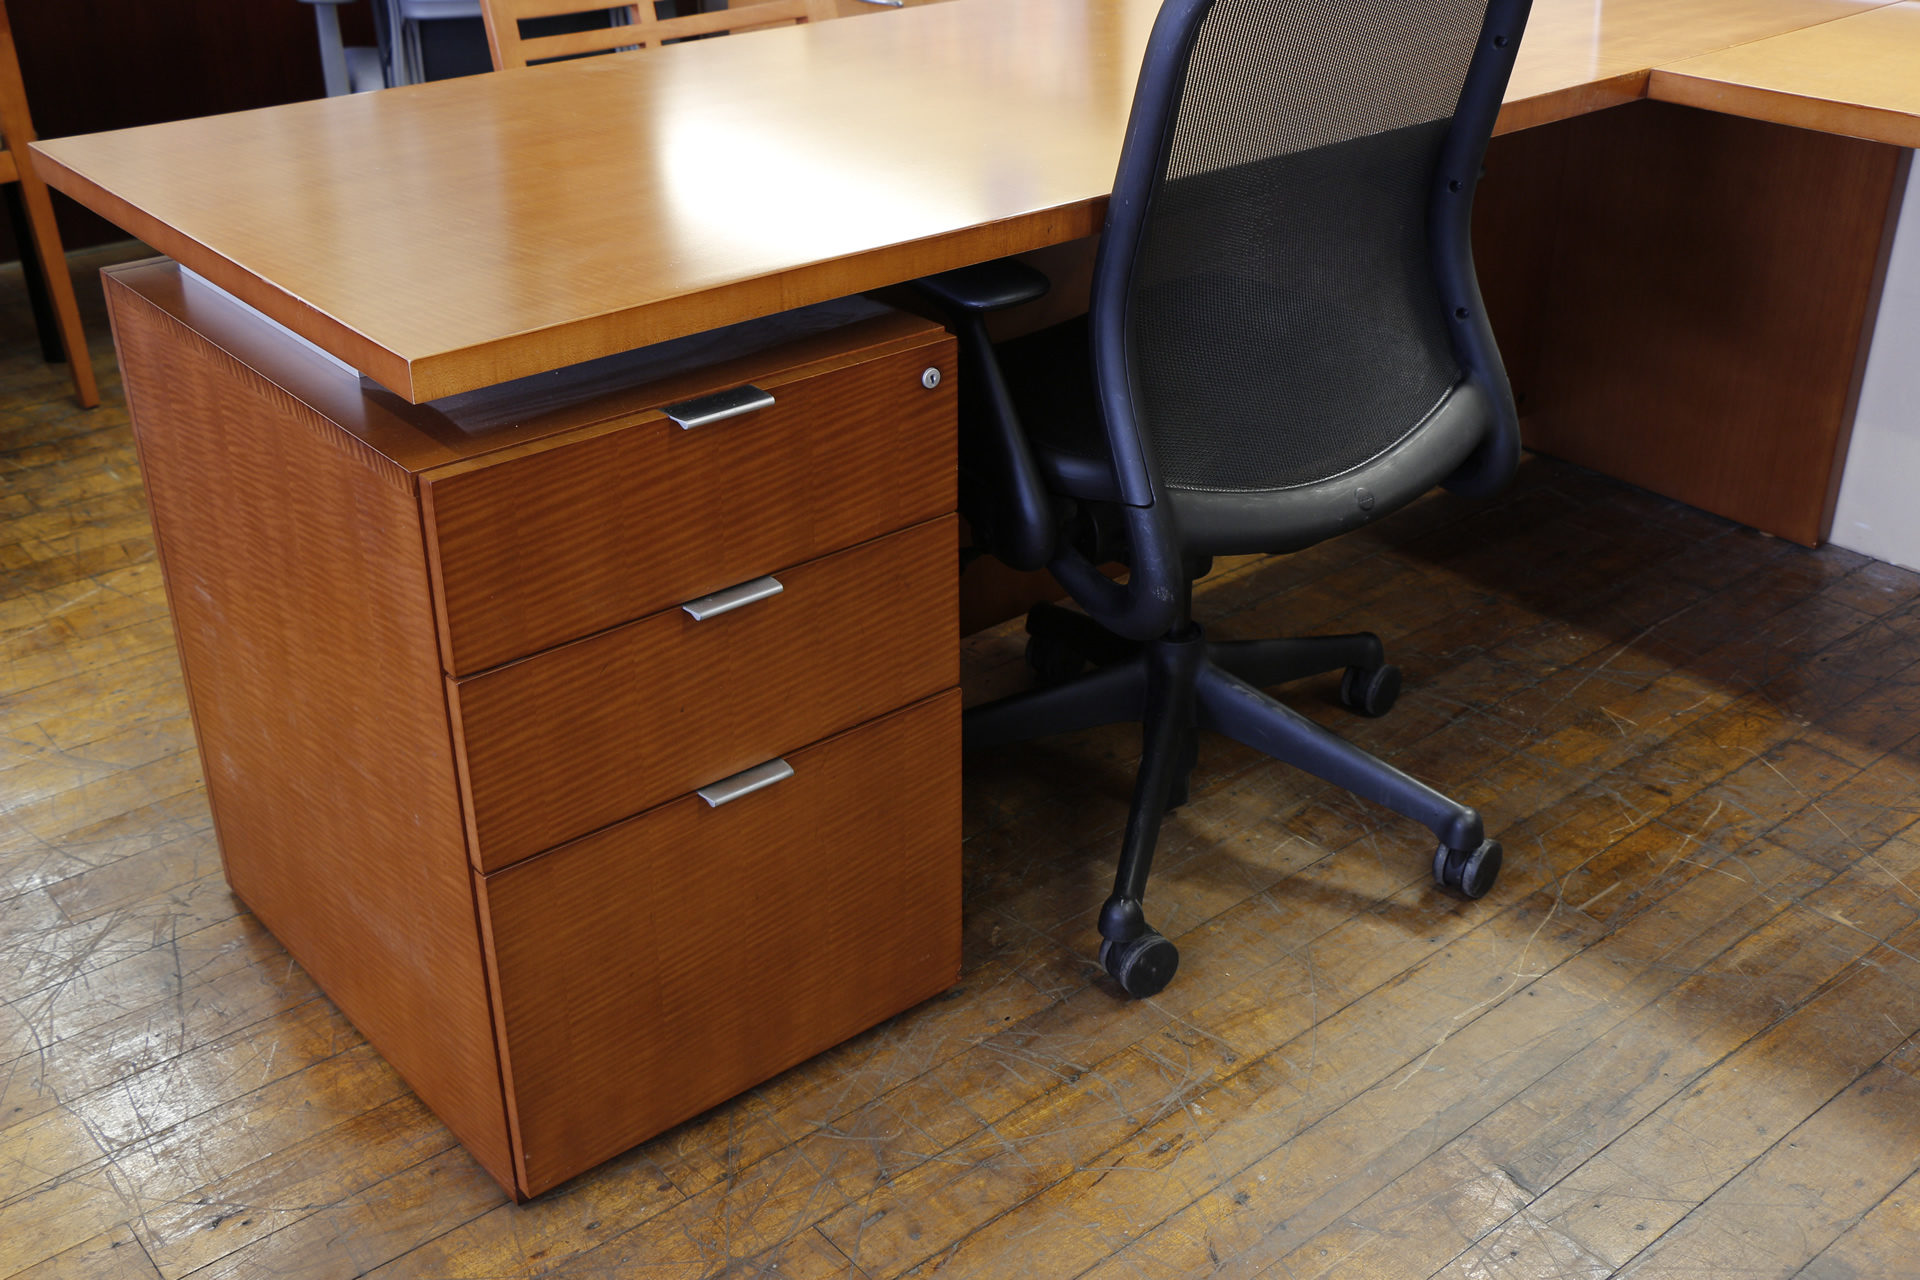 peartreeofficefurniture_peartreeofficefurniture_mg_4184.jpg